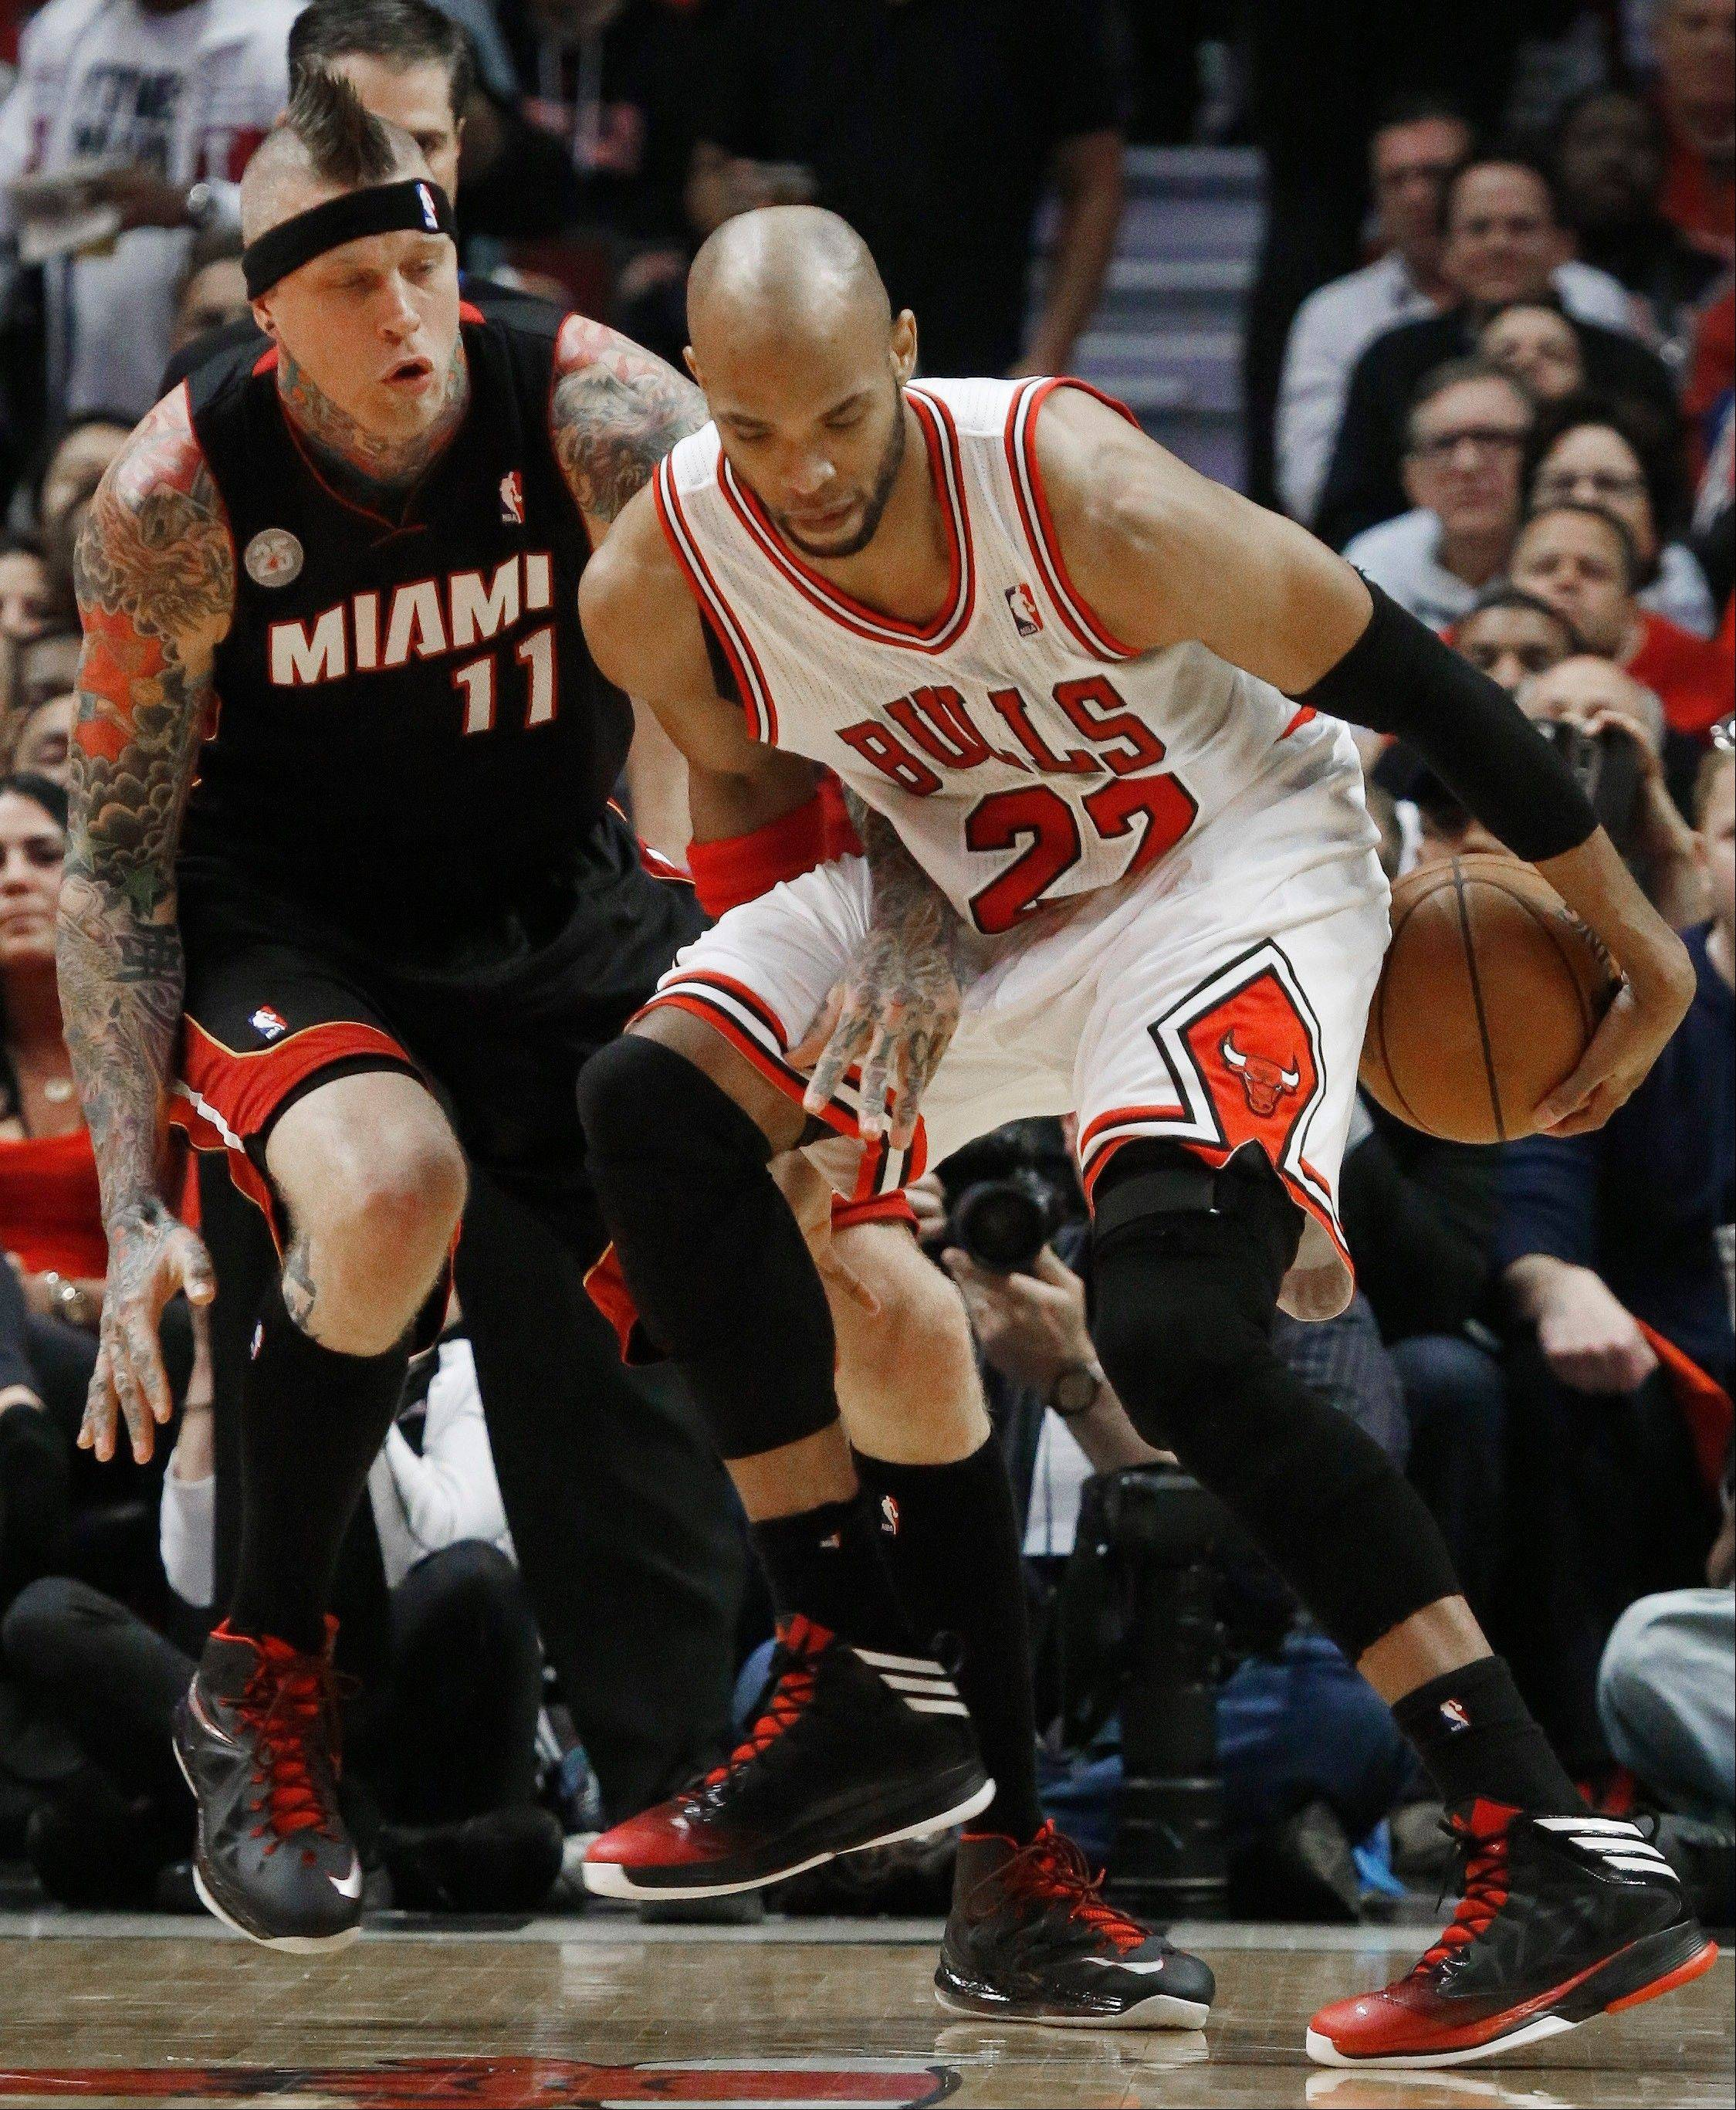 Chicago Bulls power forward Taj Gibson (22) tries to keep a loose ball as Miami Heat power forward Chris Andersen (11) looks on during the first half of Game 3 of an NBA basketball playoffs Eastern Conference semifinal on Friday, May 10, 2013, in Chicago.